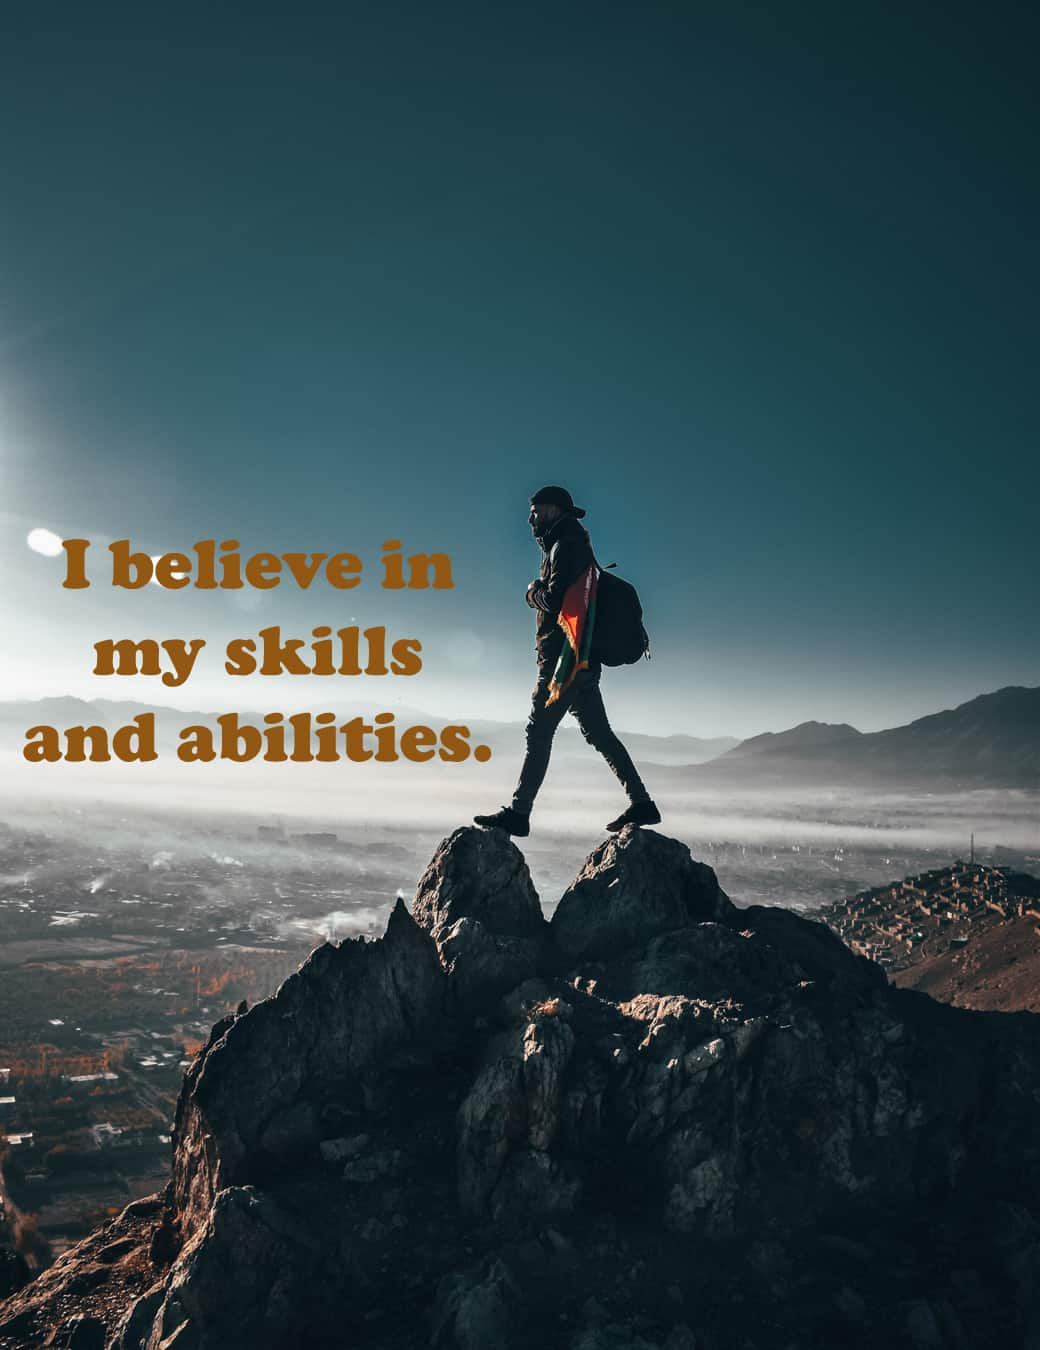 I believe in my skills and abilities